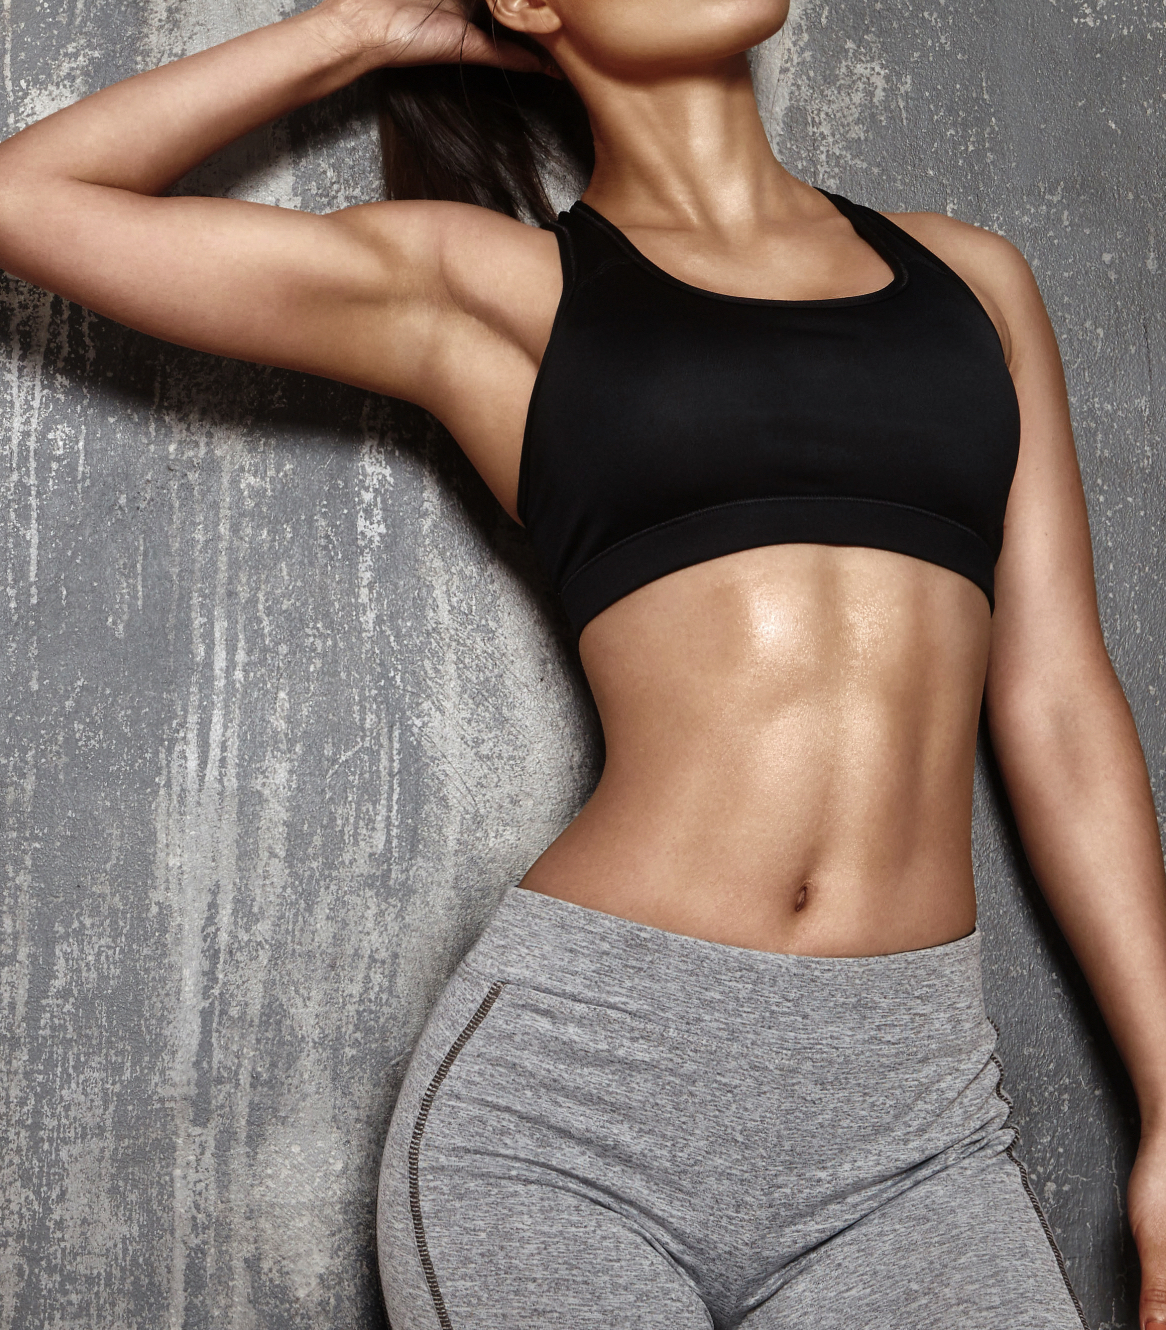 Muscular woman's body with abs